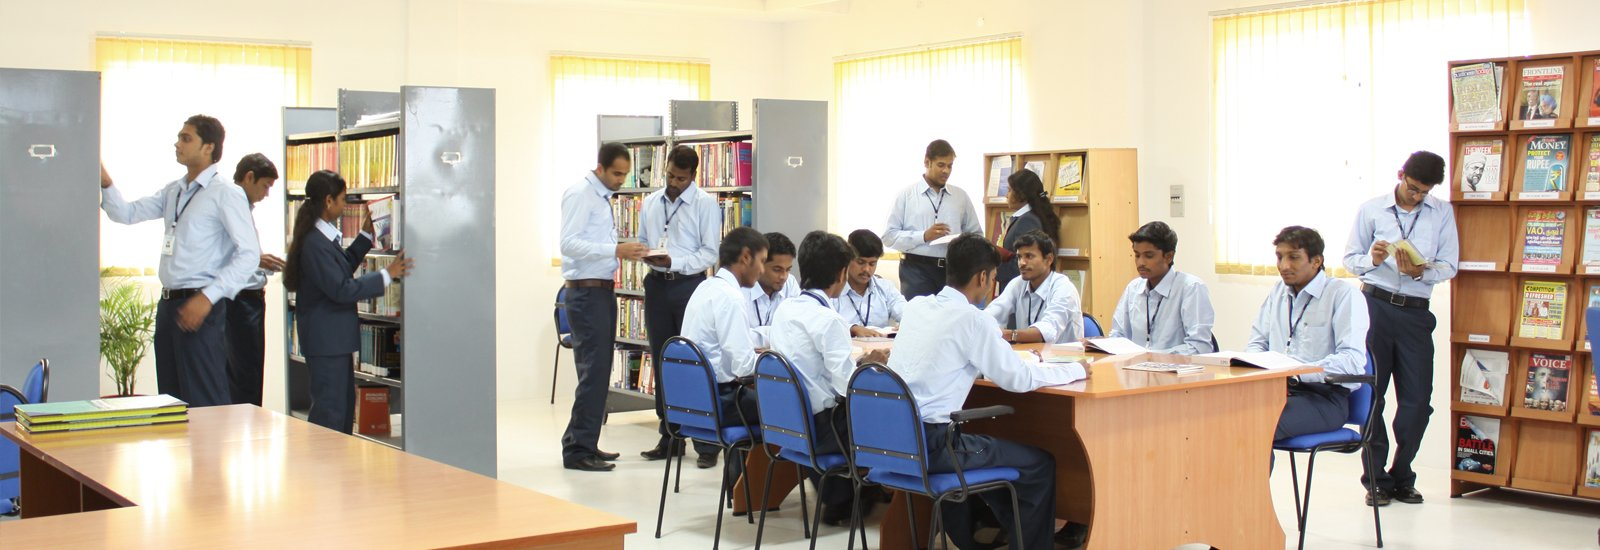 best MBA college in pollachi, mba college pollachi, best MBA college in coimbatore, mba college coimbatore, mba, MBA college, best mba college, stand alone b-school coimbatore, B-School coimbatore, b-school, stand alone b-school, stand alone, business schools in coimbatore, business schools, business, schools, school, b schools coimbatore, b, b schools, management, wisdom, MBA colleges in Udumalpet, MBA, colleges, mba colleges, college, mba colleges in pollachi, mba colleges in, mba colleges, mba college, mba, bschool, school, BSchool, MBA, MBA College, mba colleges in palani, mba course, palani, wisdom, wisdom college, business schools in pollachi, business schools in, MBA institute, institute, MBA institute in coimbatore, Wisdom College, top placement MBA colleges in coimbatore, placement MBA colleges in coimbatore, MBA colleges in coimbatore, colleges in coimbatore, MBA colleges in coimbatore under bharathiar university, colleges in coimbatore under bharathiar university, under bharathiar university, in coimbatore under bharathiar university, bharathiar university, MBA colleges in coimbatore fees structure, colleges in coimbatore fees structure, in coimbatore fees structure, fees structure, fees, top 10 MBA colleges in coimbatore, 10 MBA colleges in coimbatore, top 10, 10 MBA, 10 MBA colleges, best MBA teaching college in coimbatore, best MBA teaching college, best MBA, best MBA teaching, MBA teaching, MBA courses in pollachi, MBA Program, program, courses, MBA courses, MBA programs coimbatore, MBA programs, programs coimbatore, programs, program, MBA college placement in coimbatore, college placement in coimbatore, placement in coimbatore, placement, college placement, mba admissions, online mba admissions, online, mba, admissions, contact for mba admissions, mba admissions, mba admission, admissions, admission, MBA colleges in kerala, colleges in kerala, in kerala, kerala, mba colleges in kerala, contact, wisdom, coimbatore, pollachi, udumalpet, MBA colleges in ooty, MBA colleges in coonoor, colleges in ooty, colleges in coonoor, ooty, mba colleges in ernakulam, colleges in ernakulam, colleges, in ernakulam, in ernakulam, mba colleges in malapuram district, mba colleges in malapuram, colleges in malapuram district, colleges in malapuram, malapuram, mba colleges in kodaikkanal,colleges in kodaikkanal, mba colleges in, kodaikkanal, colleges in, mba colleges ottanchatram, mba colleges dindigul, colleges ottanchatram, colleges dindigul WSM, wsm, wisdom, wisdom college, wisdom mba college, training programs, training program, training, programs, wisdom school of management, mba colleges in kolikode, colleges in kolikode, colleges in, in kolikode, kolikode, mba colleges in salem, colleges in salem, in salem, salem, wisdom, MBA colleges in Dharapuram, colleges in Dharapuram, in Dharapuram , Dharapuram, MBA colleges, mba, MBA, mba colleges, MBA colleges, mba programs, MBA programs, sankara, sankara college, sankara mba college, sankara institute of management science, sankara institute of management science coimbatore, sankara institute of management, sankara institutions, sankara institute,sankara institution, sankara institutes, bschool, b, school, business, school, schools, standalone, top, best, good, ranking, ranked, MBA, management, course, program, institute, institutions, tamilnadu, tamil, nadu, india, coimbatore, chennai, tancet, cat, mat, results, aicte, approved, affiliated, to, anna, university, entrance, group, discussion, in, from, around, TANCET, MAT, CAT, Bharathiar University, Anna University, results, B School, Business, School, Coimbatore, Management, Program, India, tamil nadu, tamilnadu, TANCET MAT CAT results,